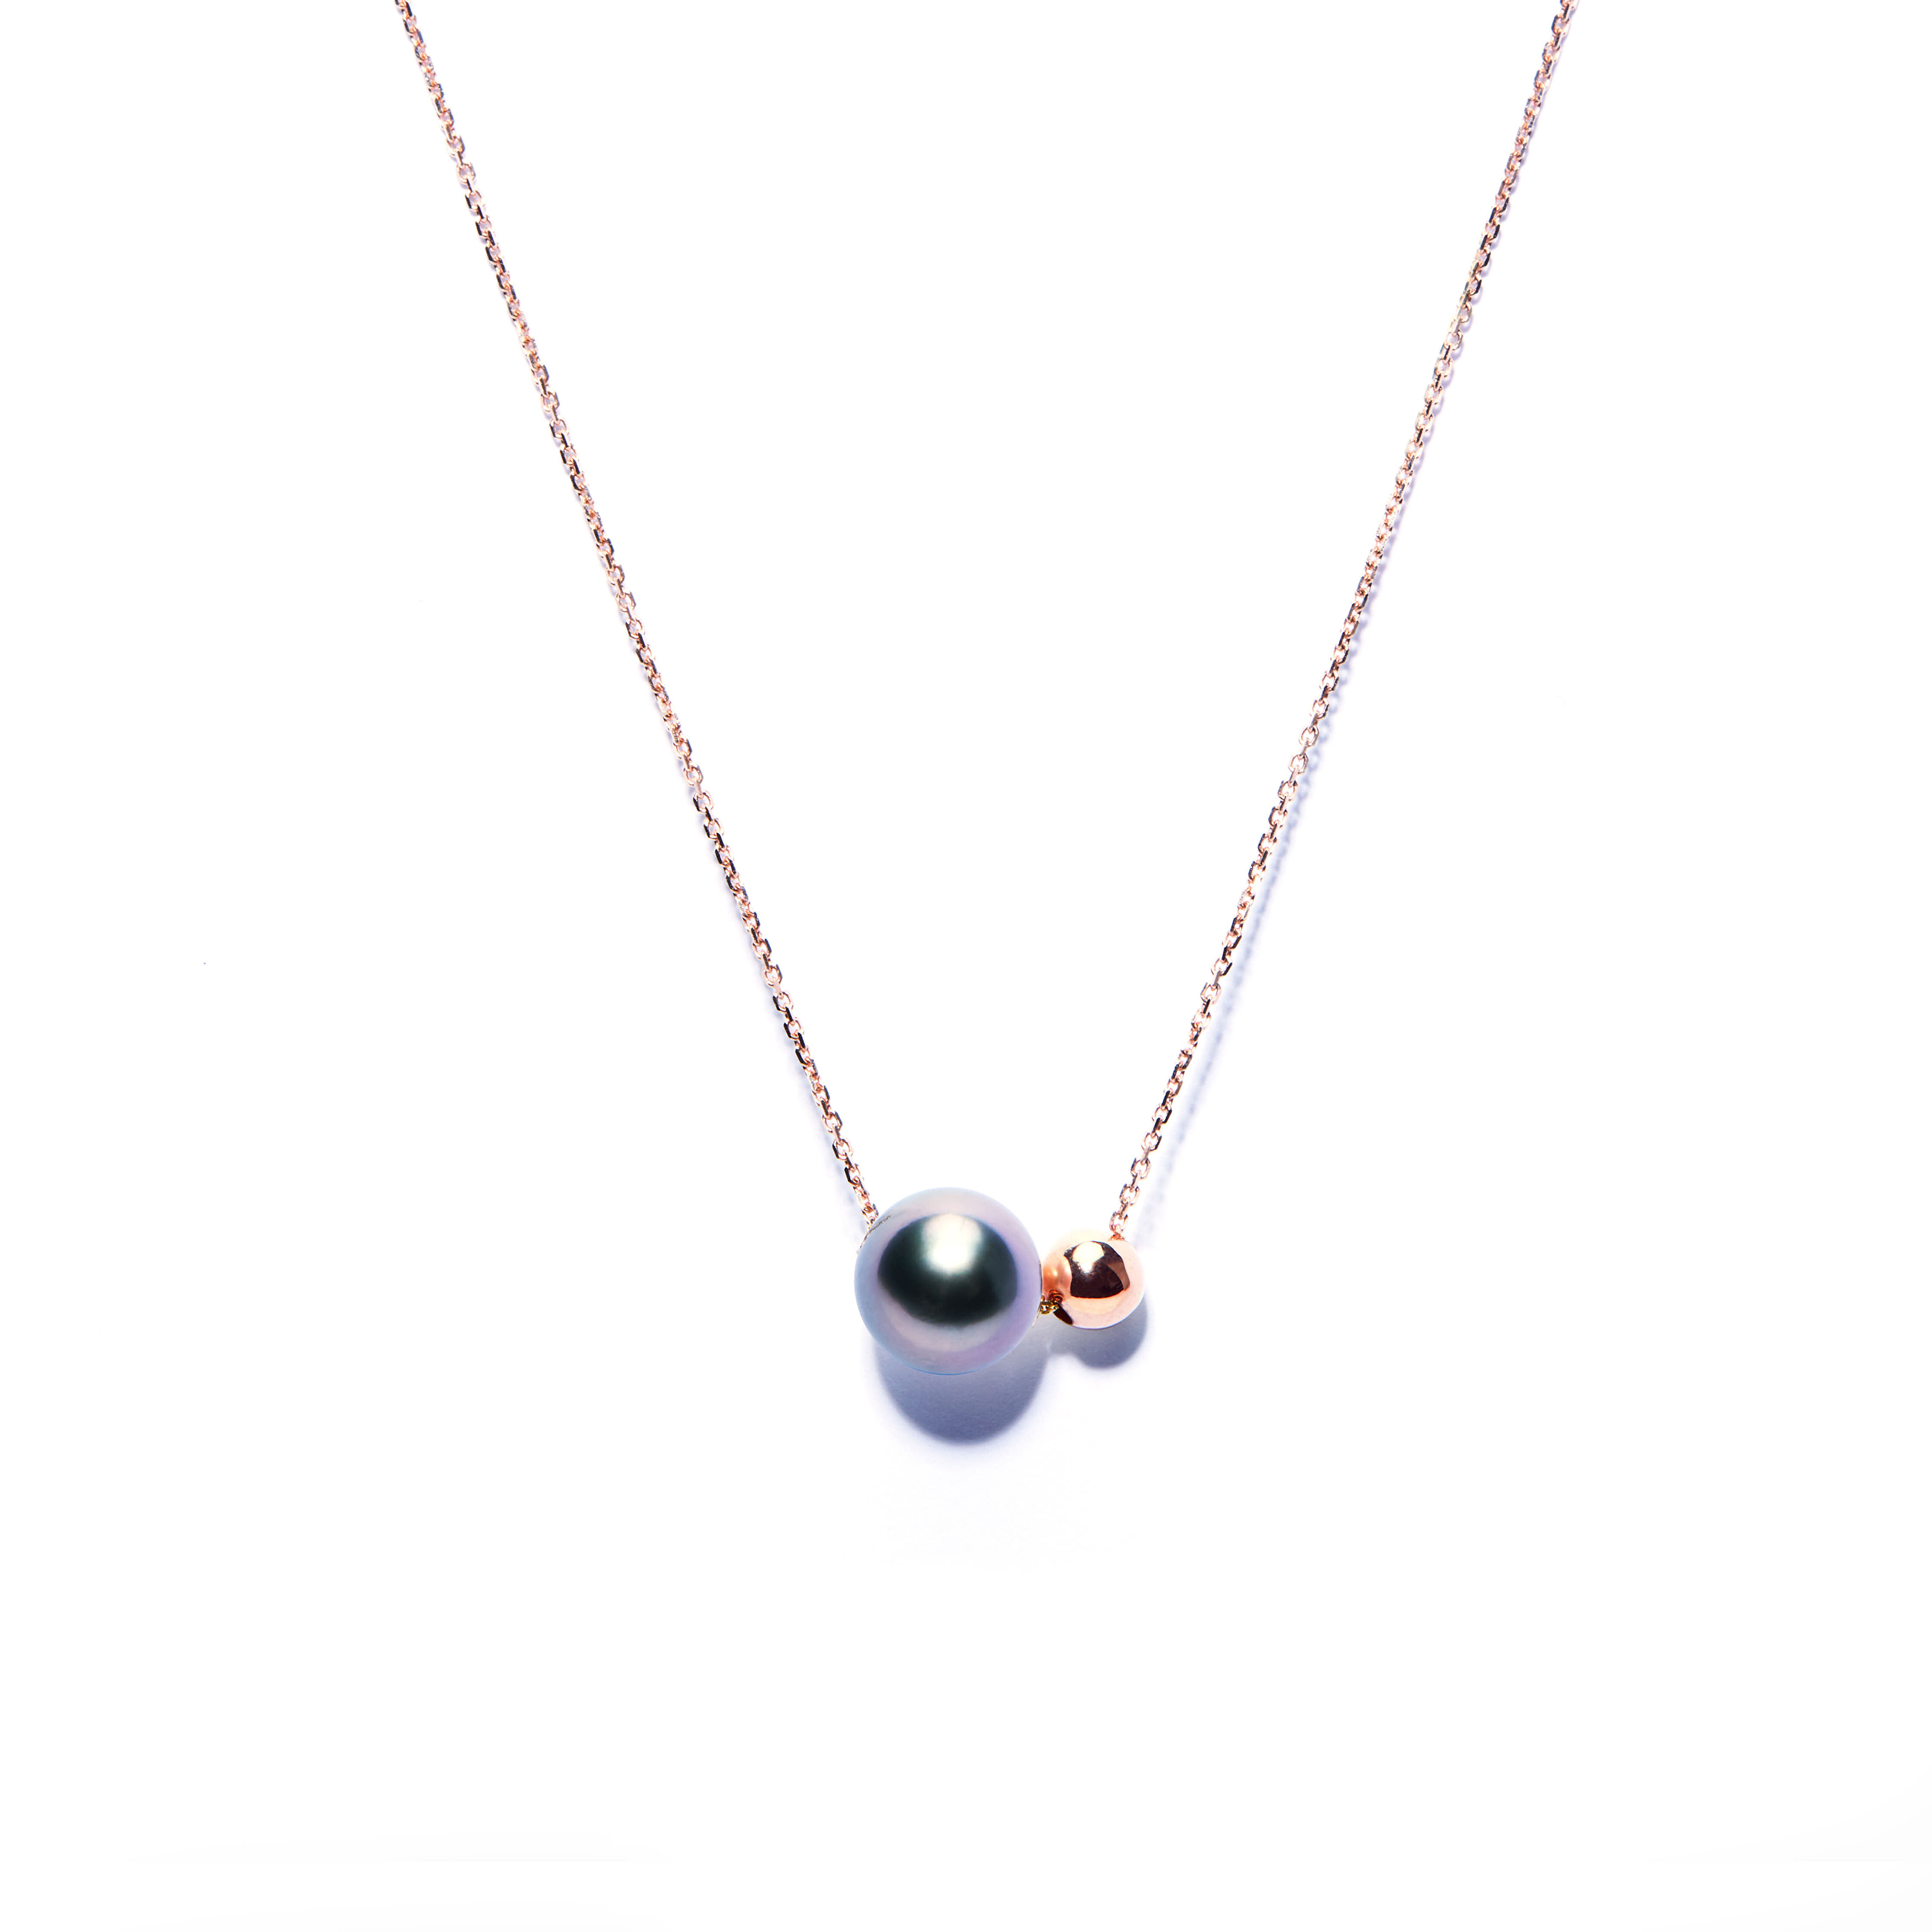 fa162907d744d Pearl And Ball Necklace Rose Gold